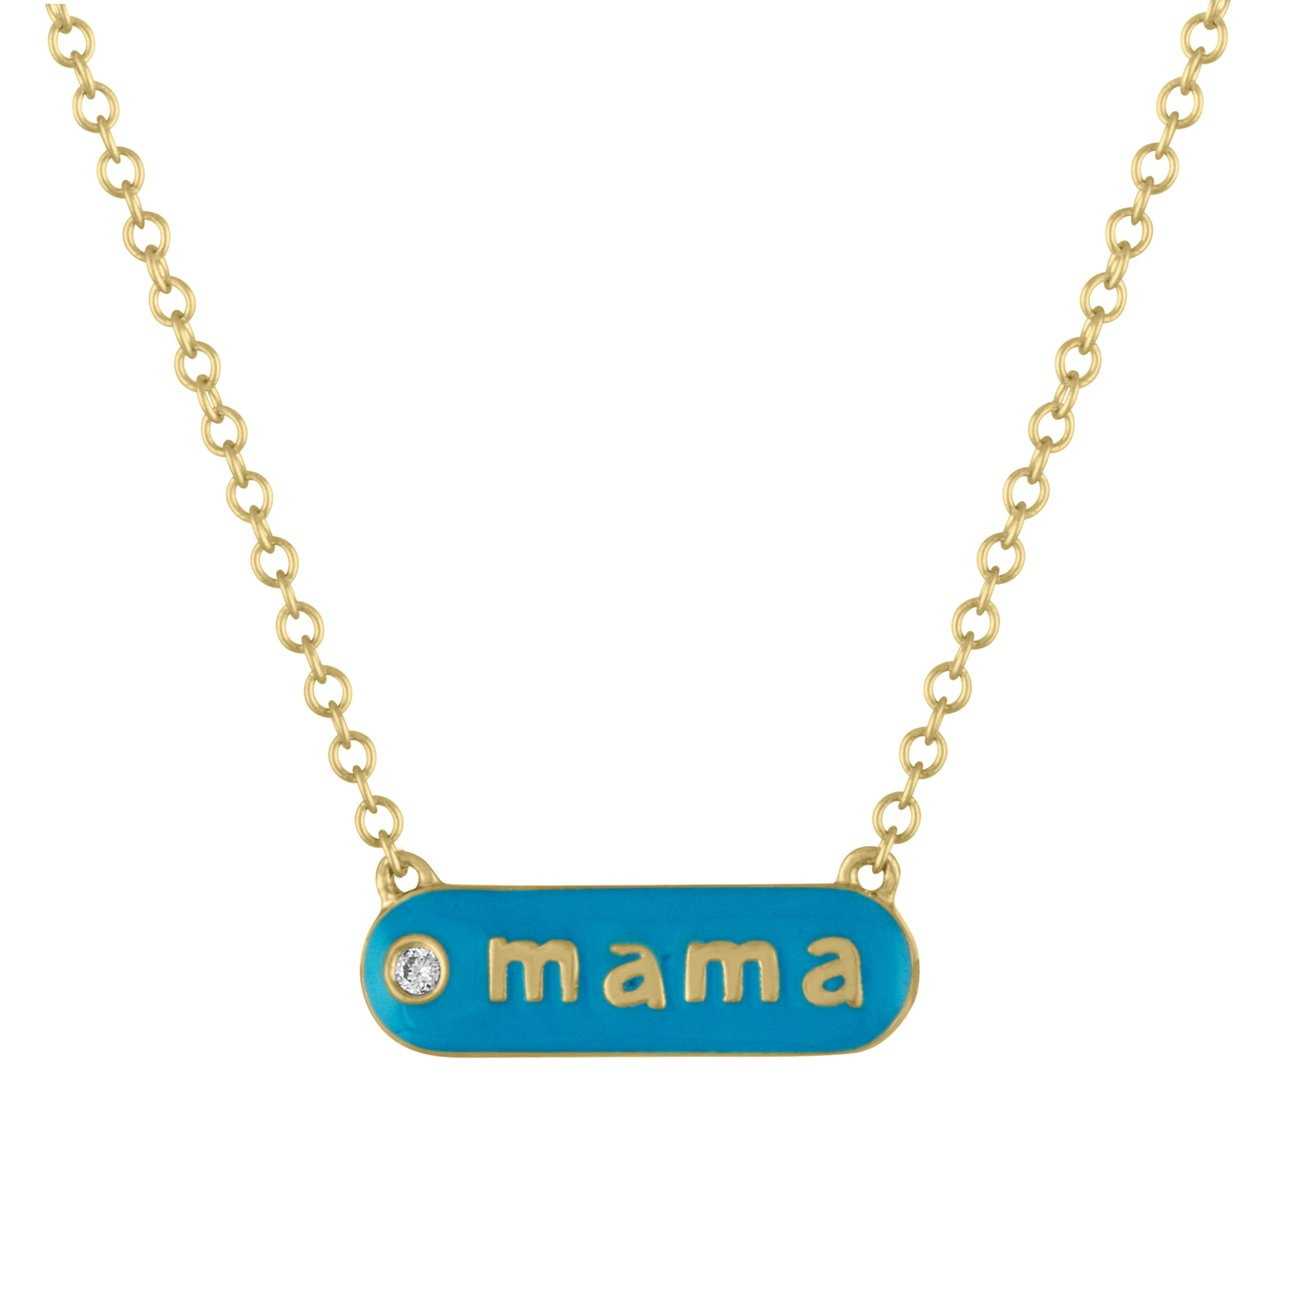 Magnolia MAMA Enamel Necklace